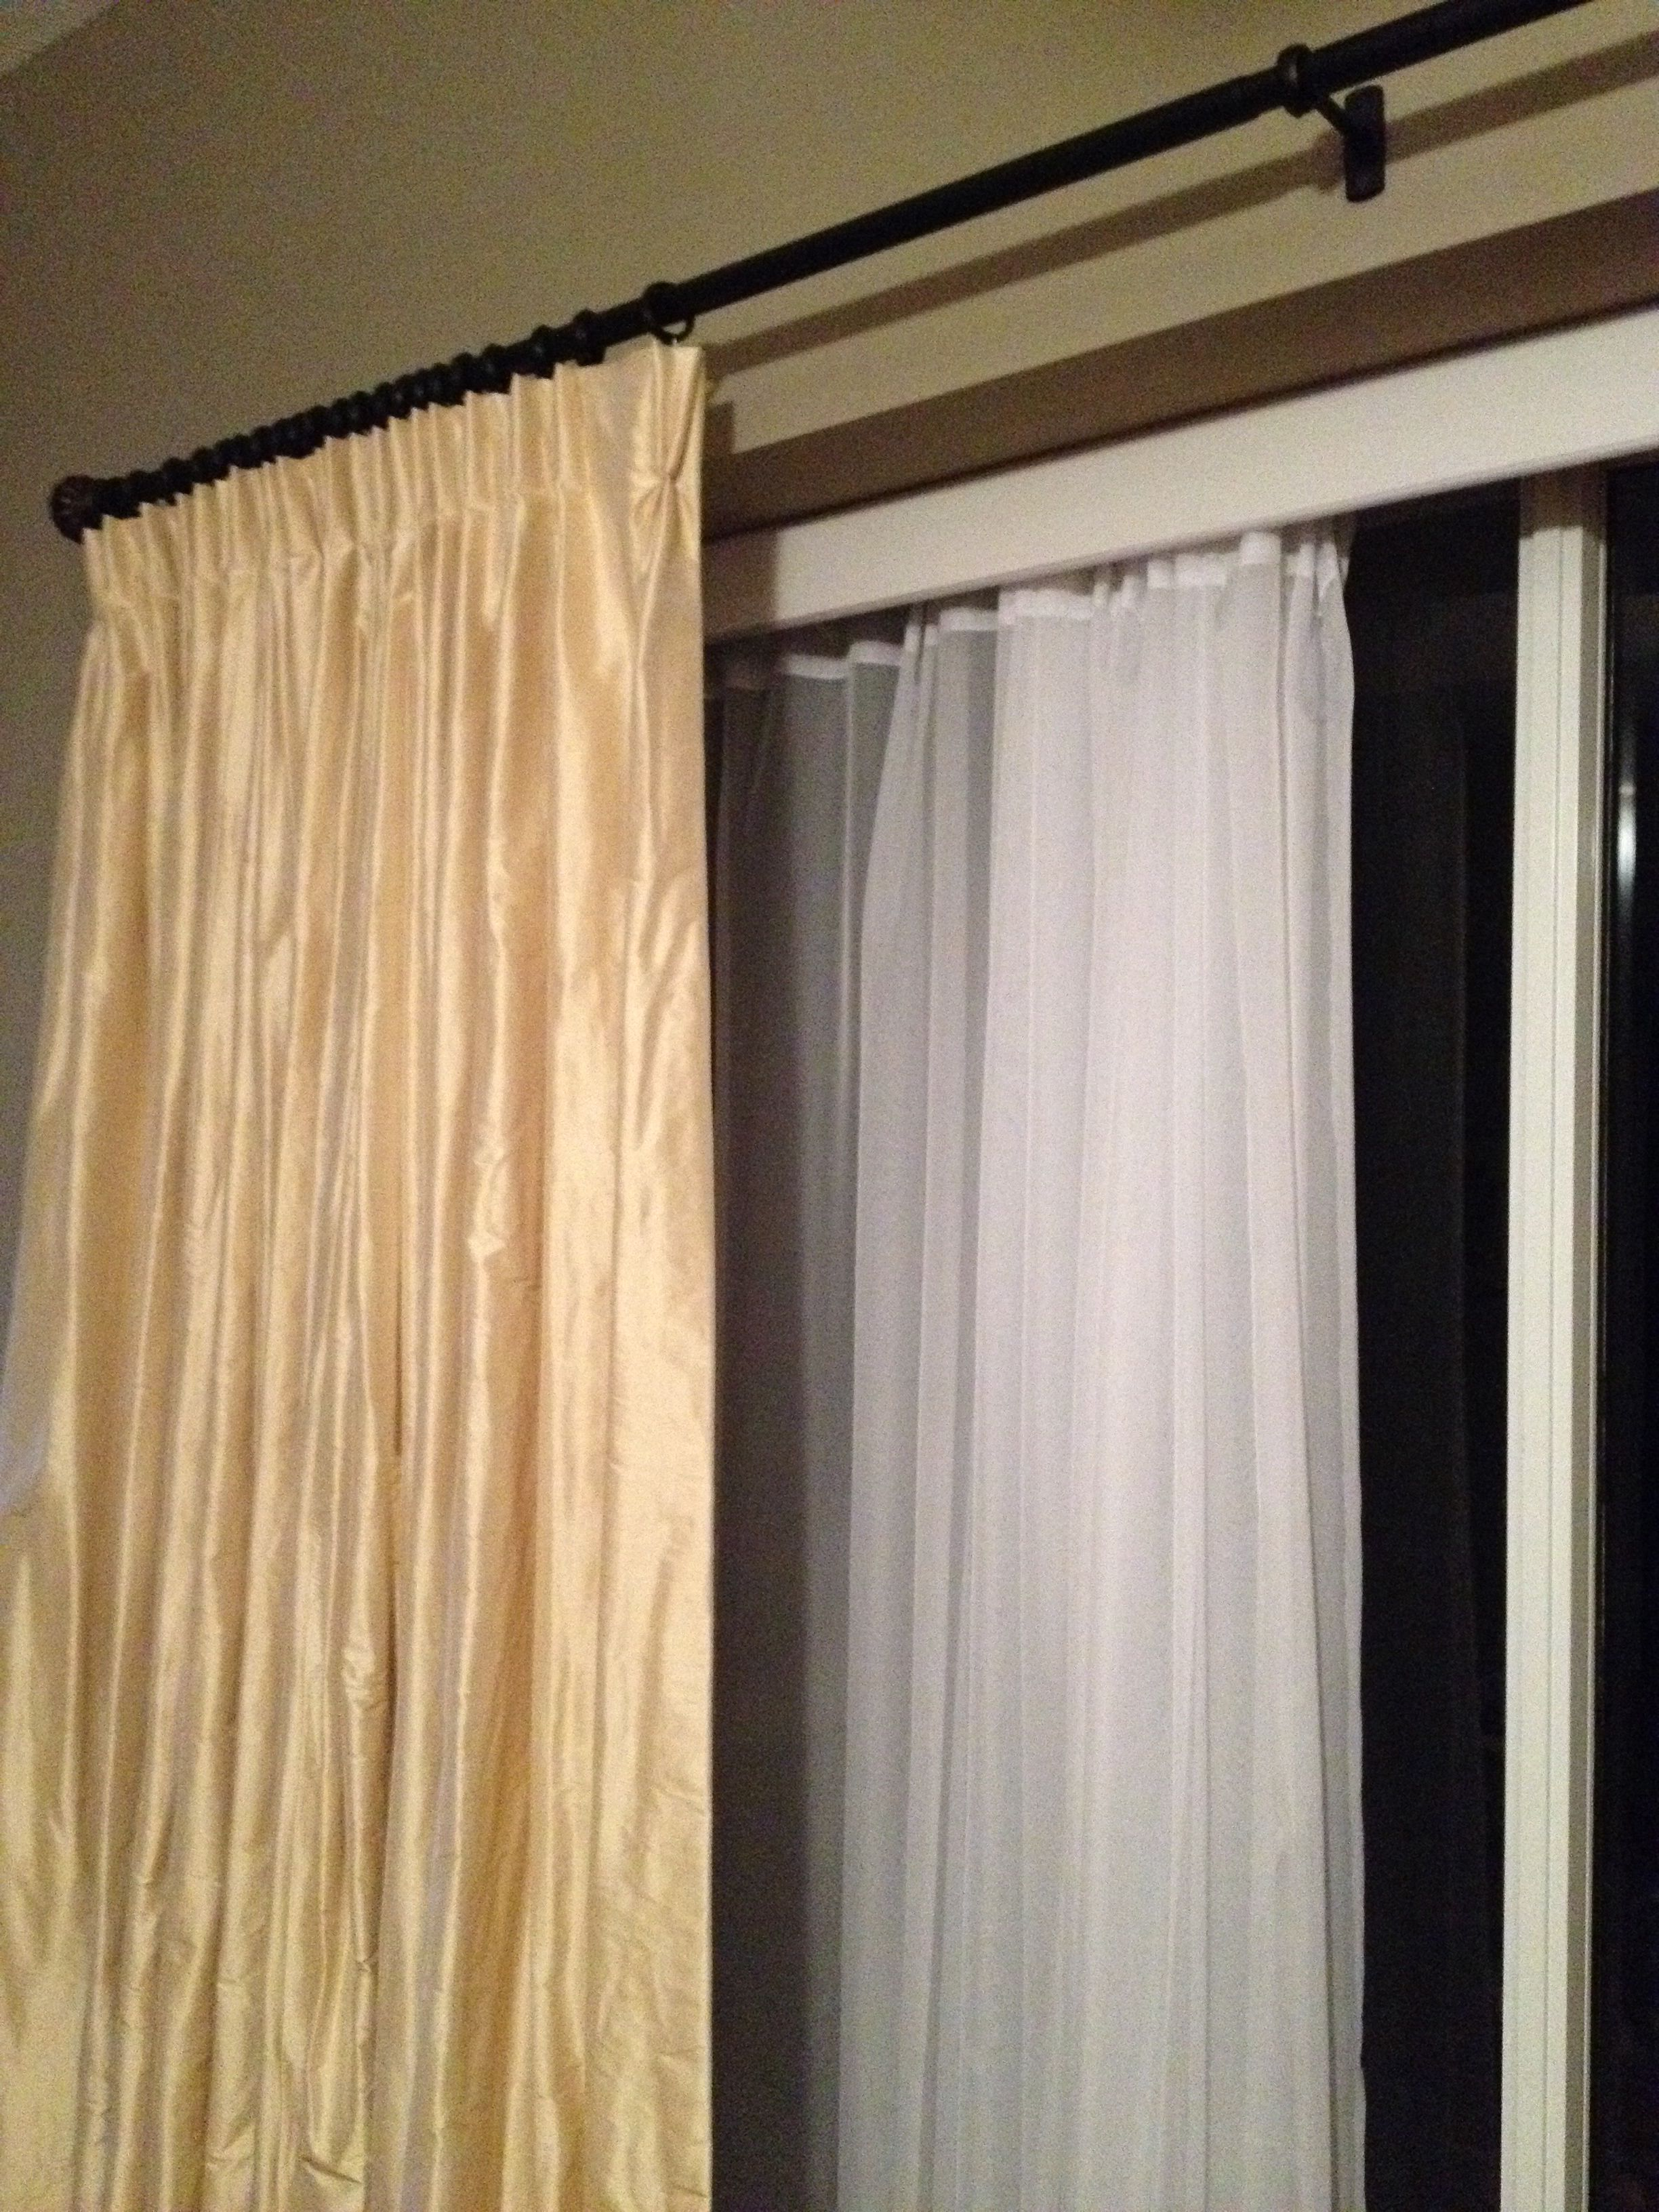 Sheers Hung On Vertical Blind Track Remove Slats First By Making Holes Along Top Hem Easy And Inexpensive Update For Old Blinds